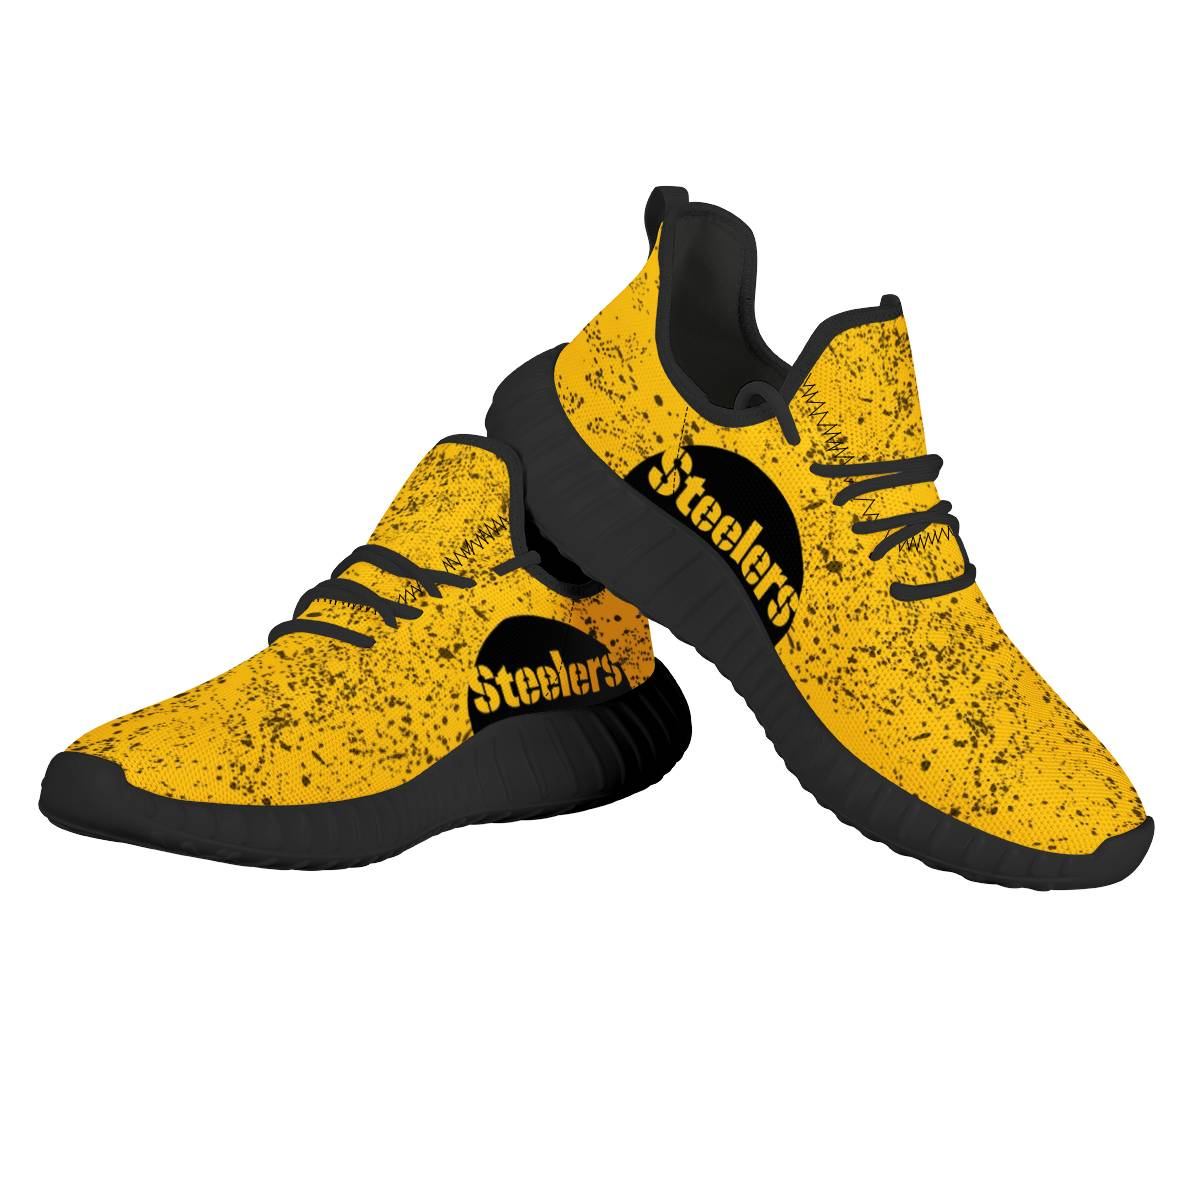 Women's Pittsburgh Steelers Mesh Knit Sneakers/Shoes 019